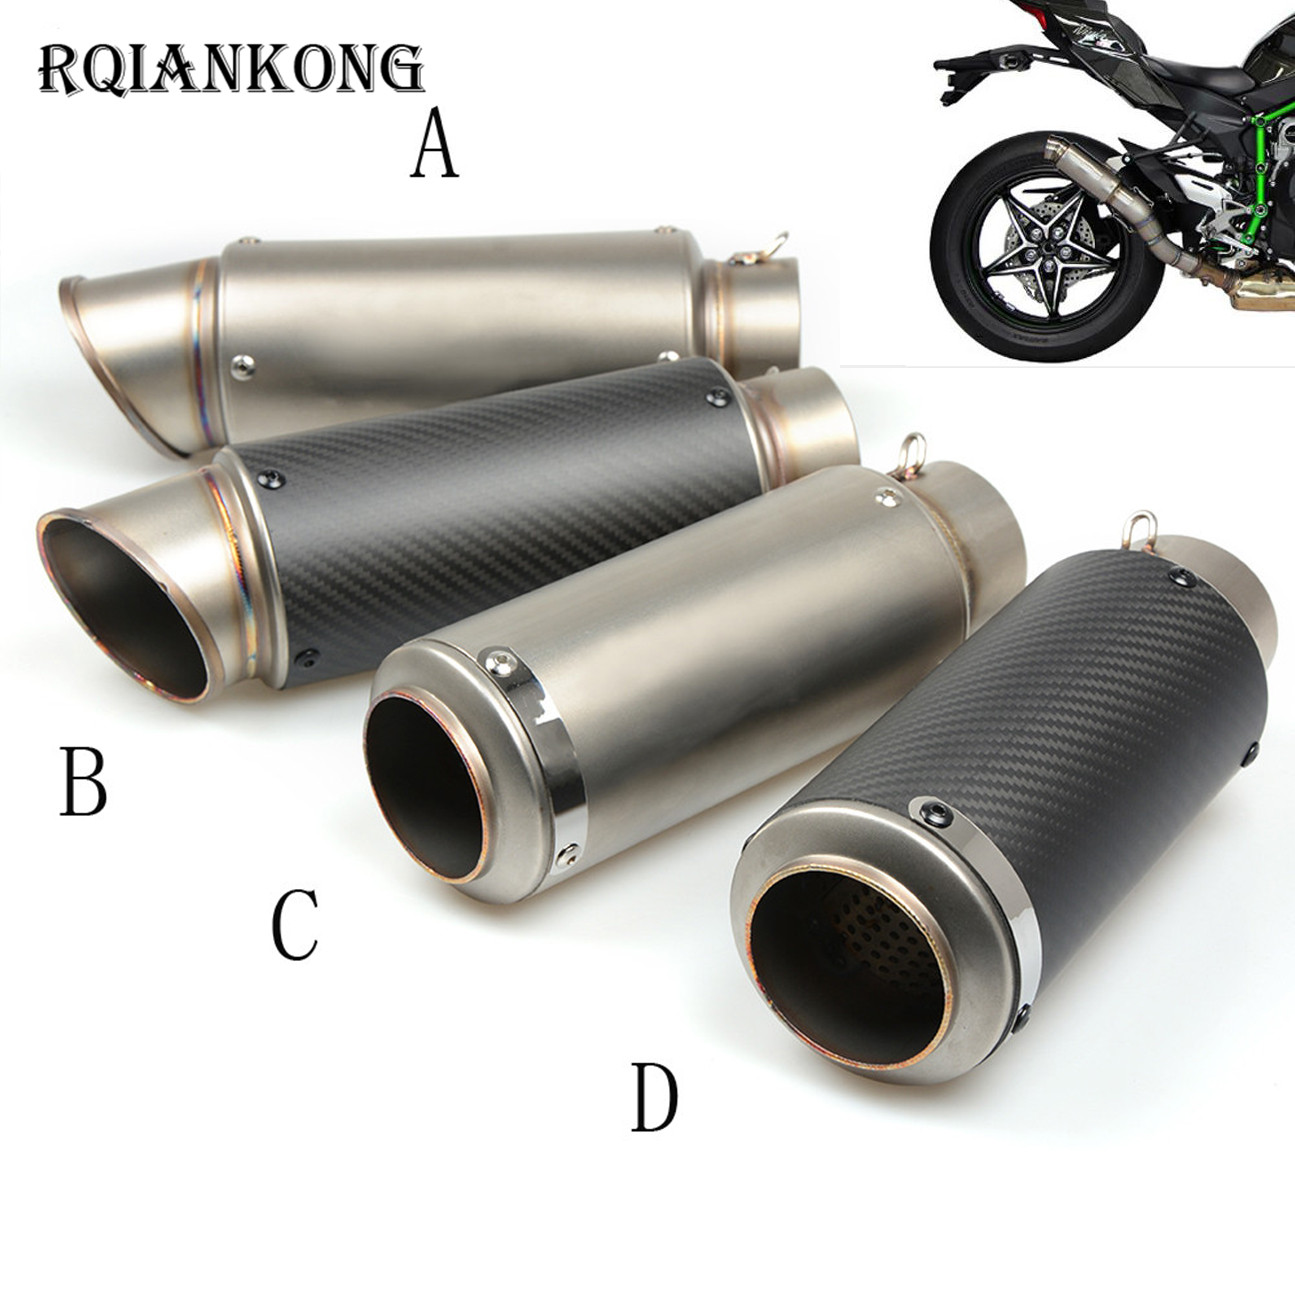 51 61MM Motorcycle Exhaust Pipe Scooter Modified 60mm exhaust Muffler pipe For SUZUKI GSXR1000 K7 GSXR 1000 GSX R1000 GSXR 17 5 7 5cm gsxr gsx r motorcycle reflective sticker and decals a pair for suzuki gsxr 600 750 1000 k1 k2 k3 k4 k5 k6 k7 k8 h1